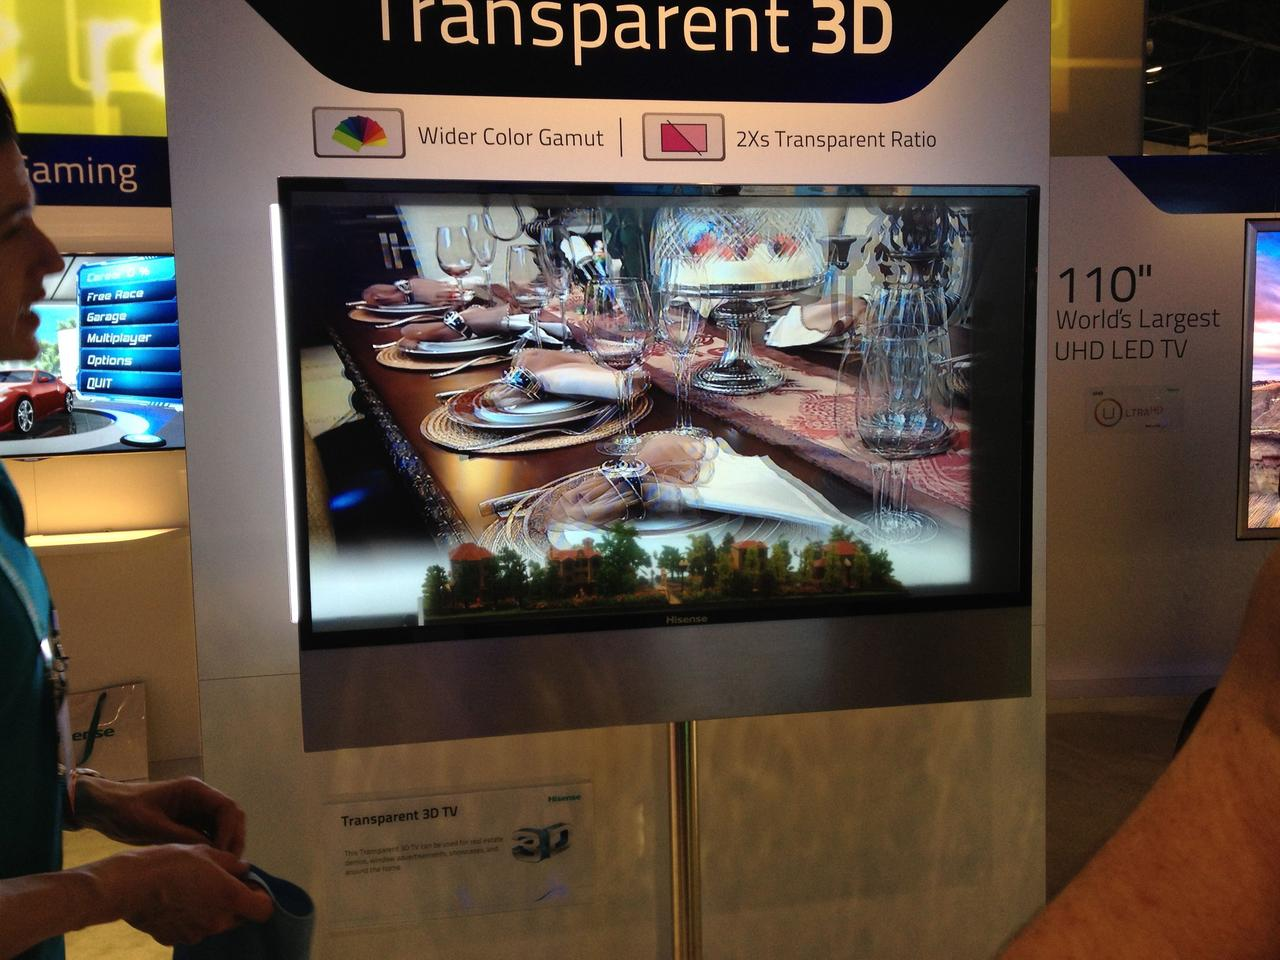 The Hisense transparent 3D TV – the model trees at the bottom of the screen are actually located behind it